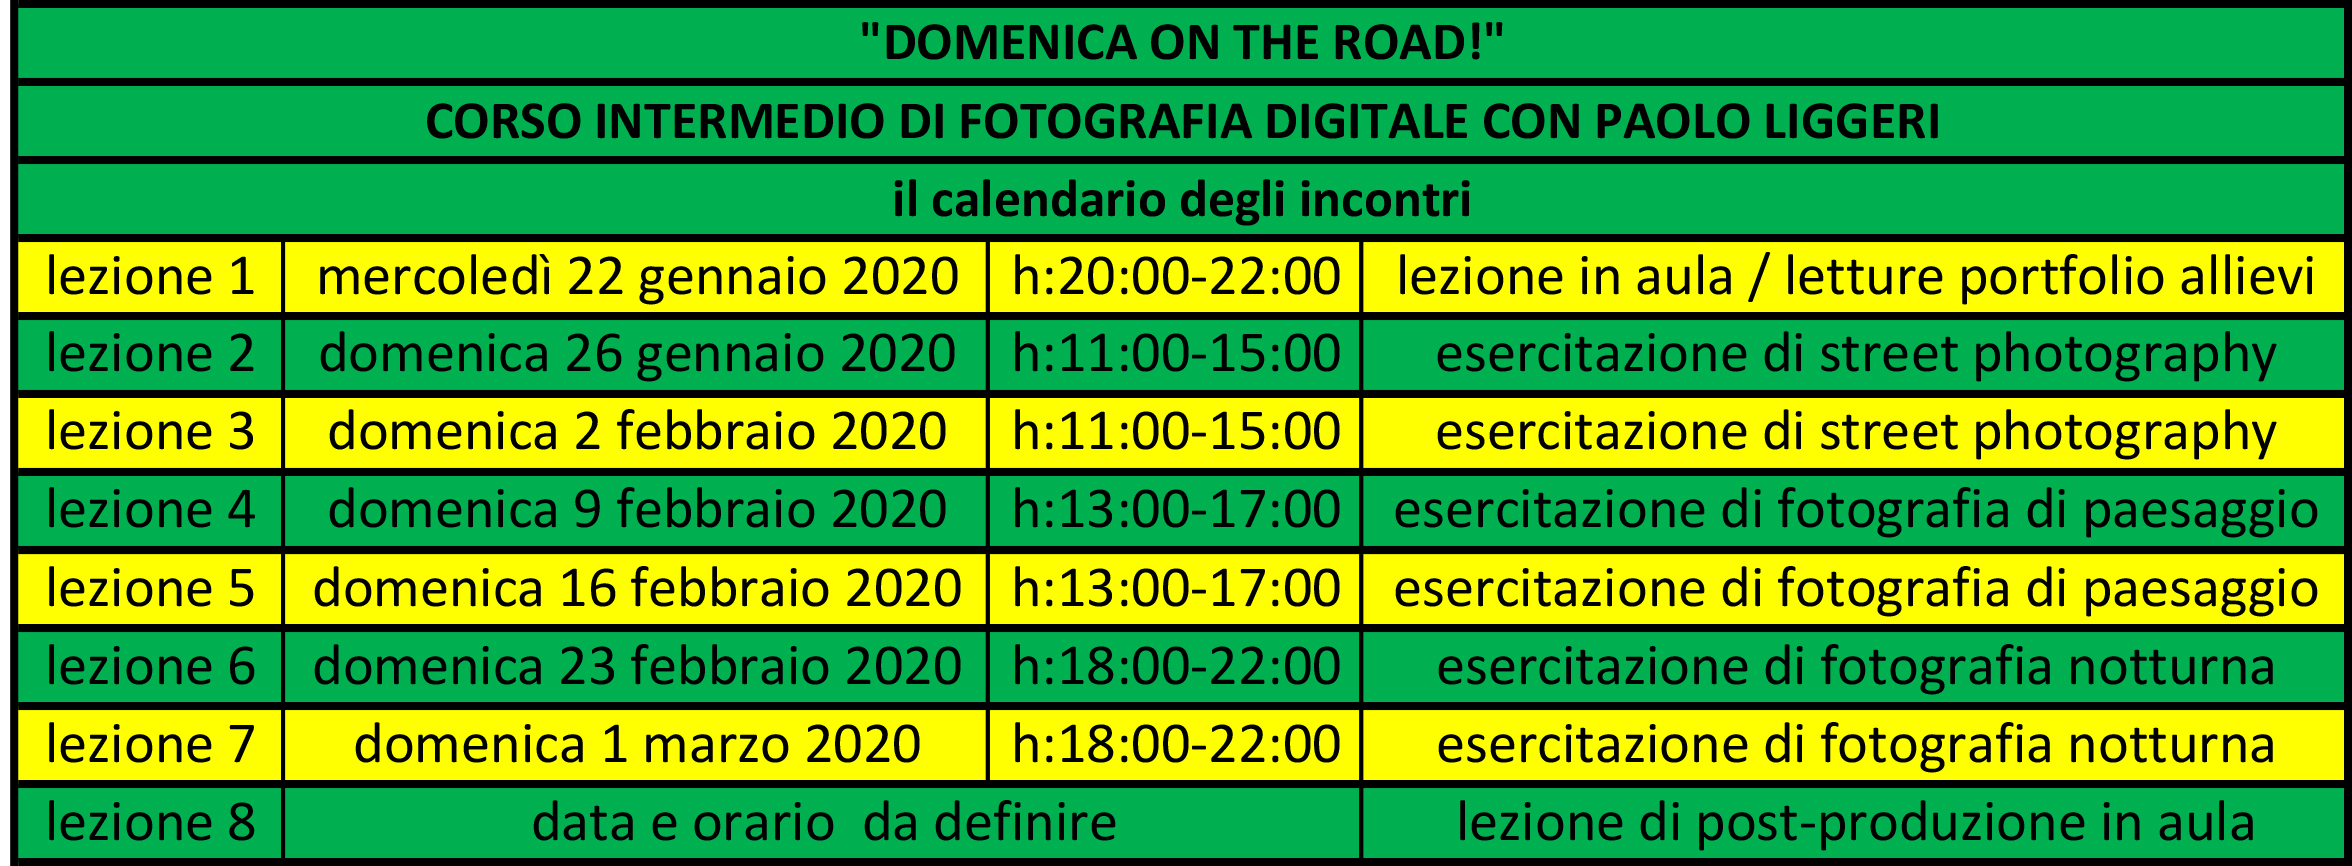 calendario incontri DOMENICA ON THE ROAD